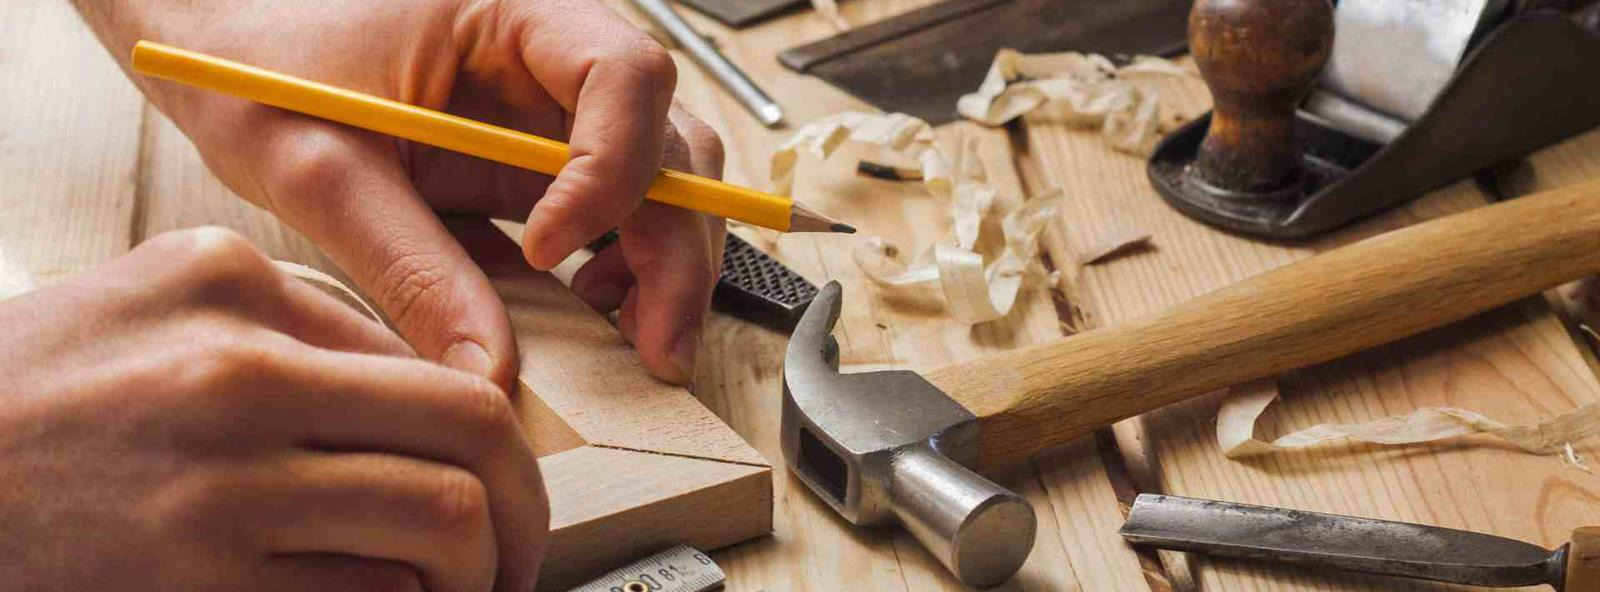 Best carpenters in chennai  We are one of the leading Carpenters in Chennai City.  We are in touch with our customers through quality, performance, service and assistance . We also deal with all kinds of wood work. - by KRISHNA ENTERPRISE, Chennai